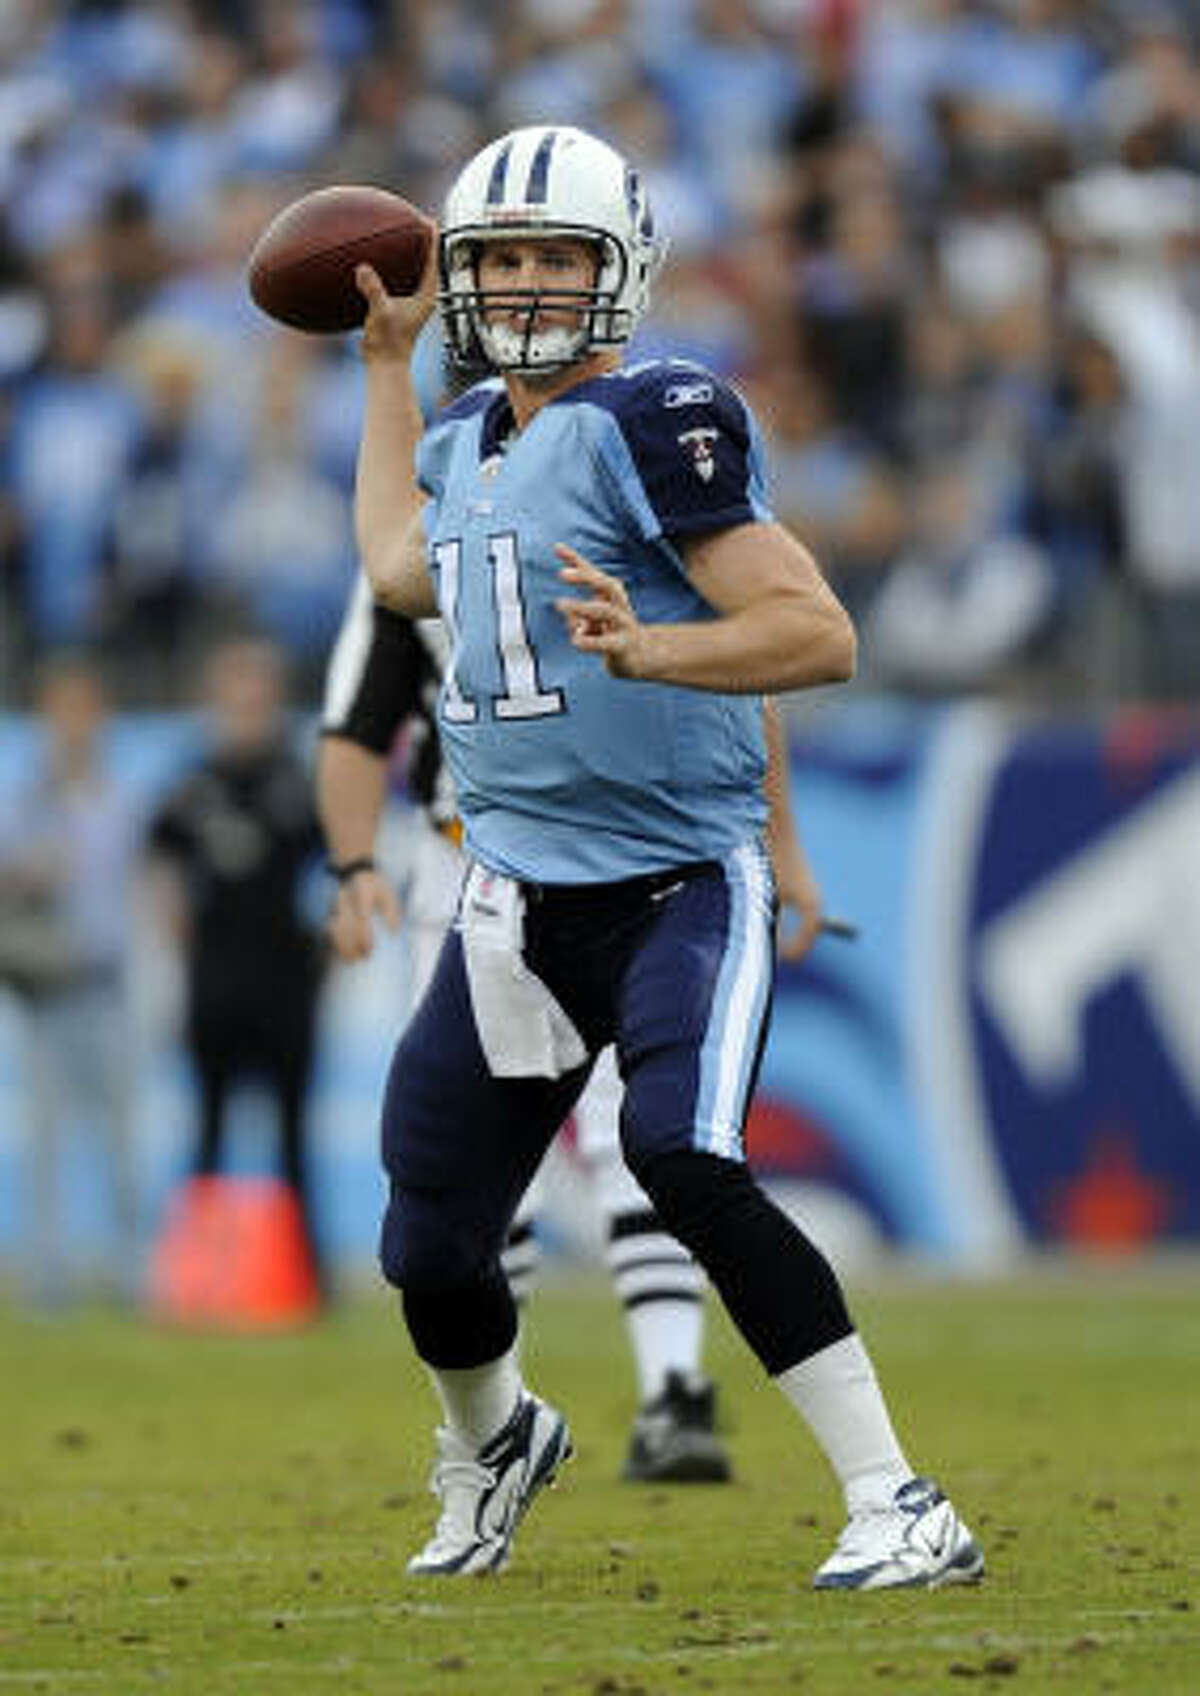 Could Rusty Smith become the latest quarterback to embarrass the Texans' defense?